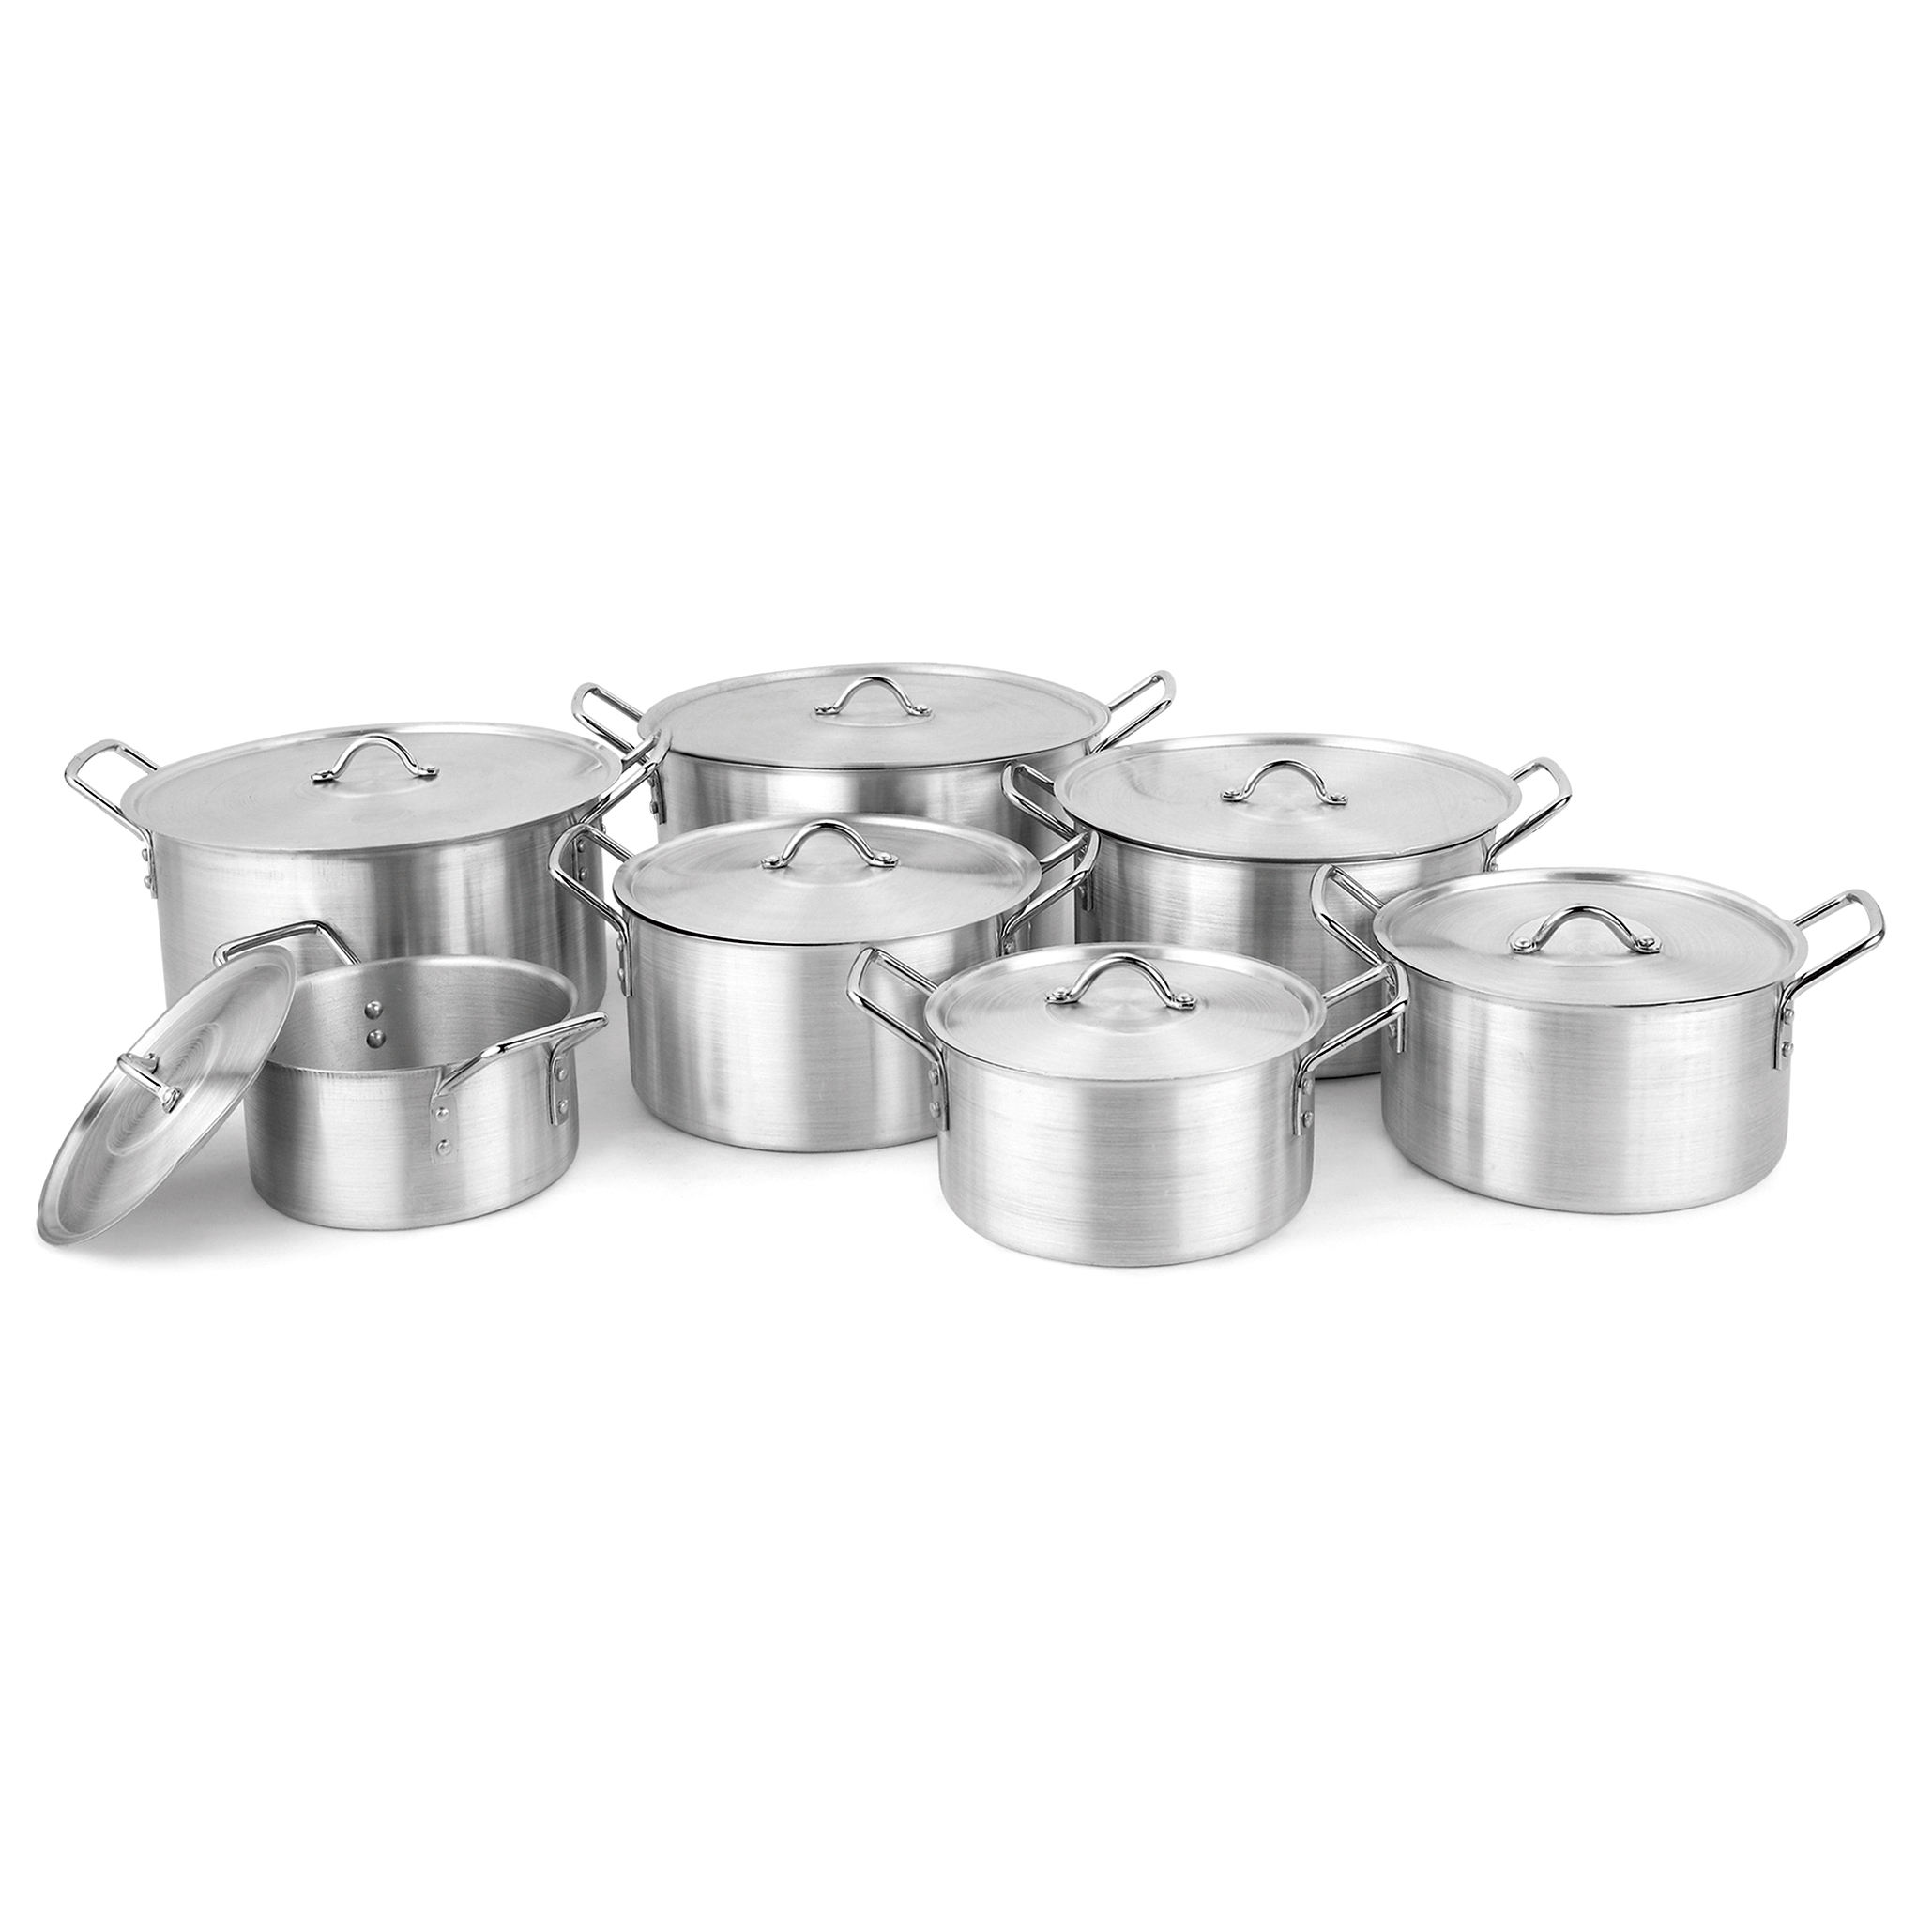 Health kitchen amway cookware replacement parts